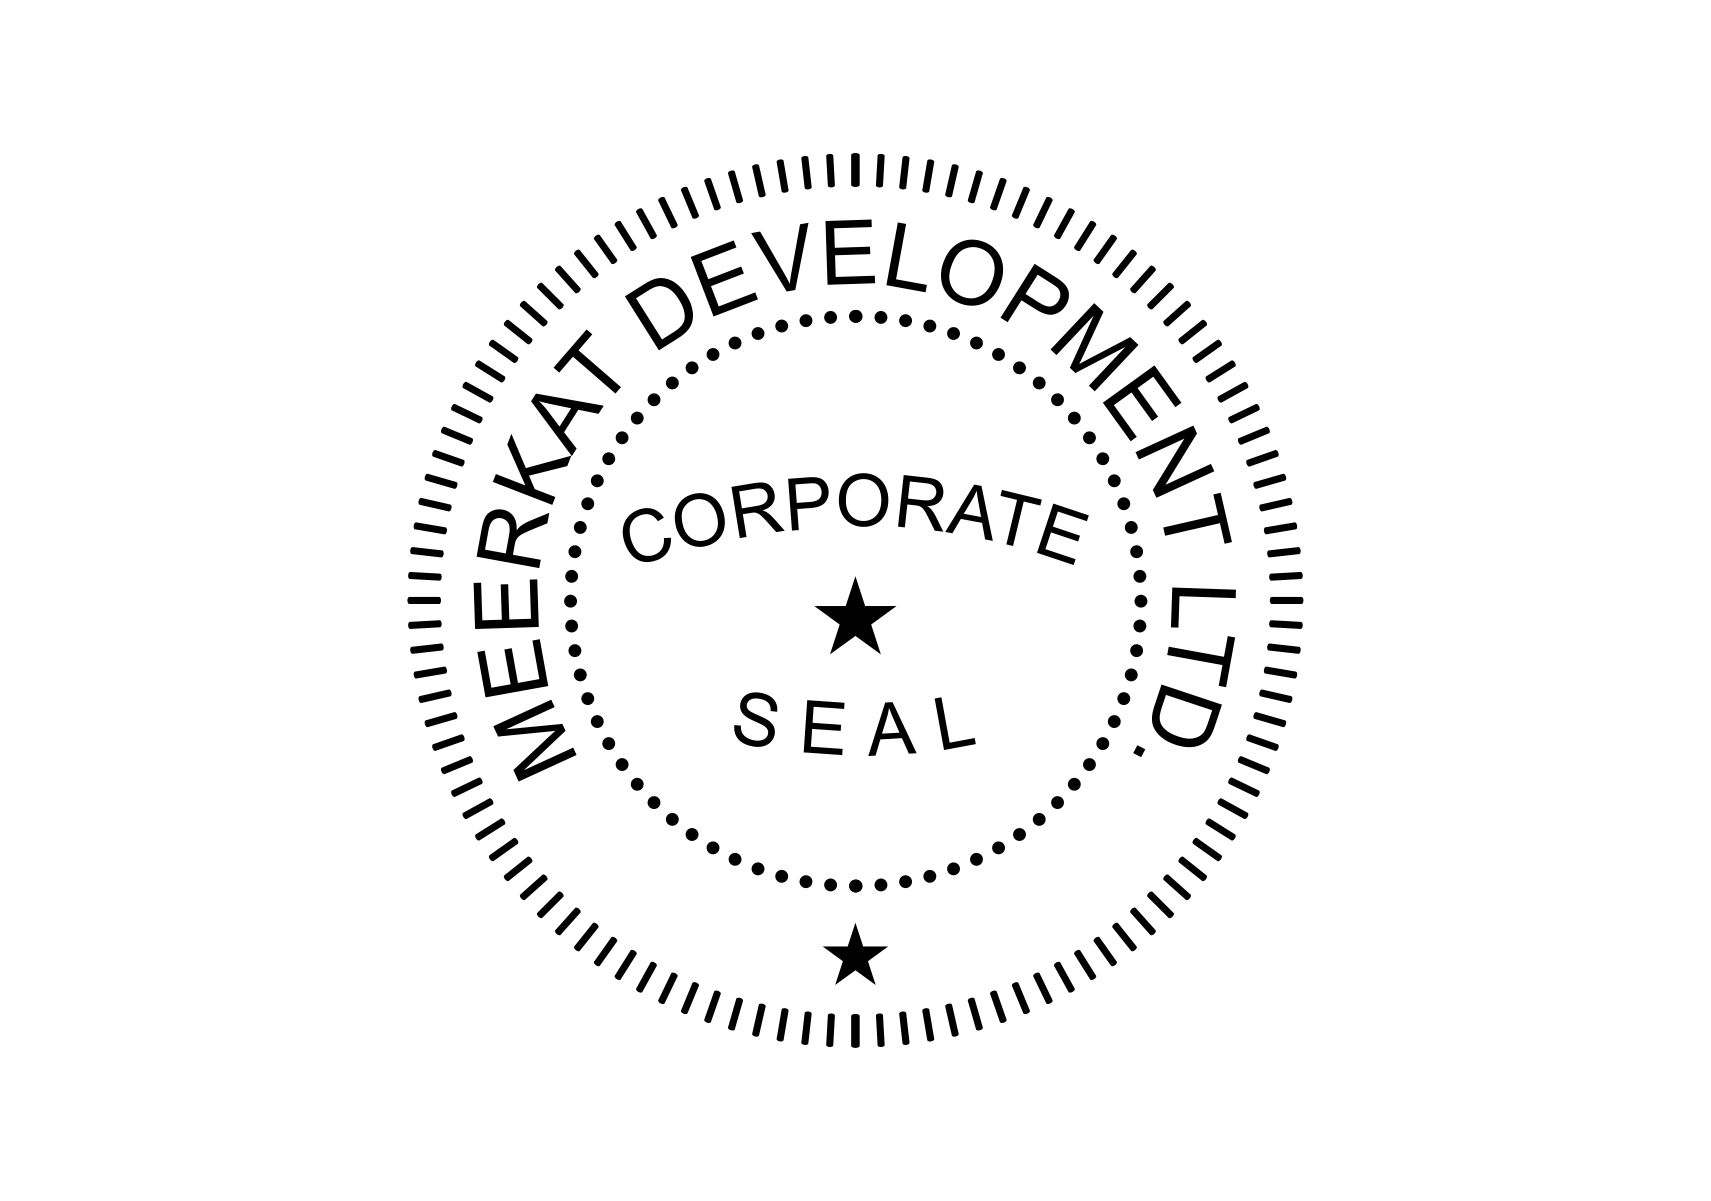 Corporate seal stamp for Common seal template